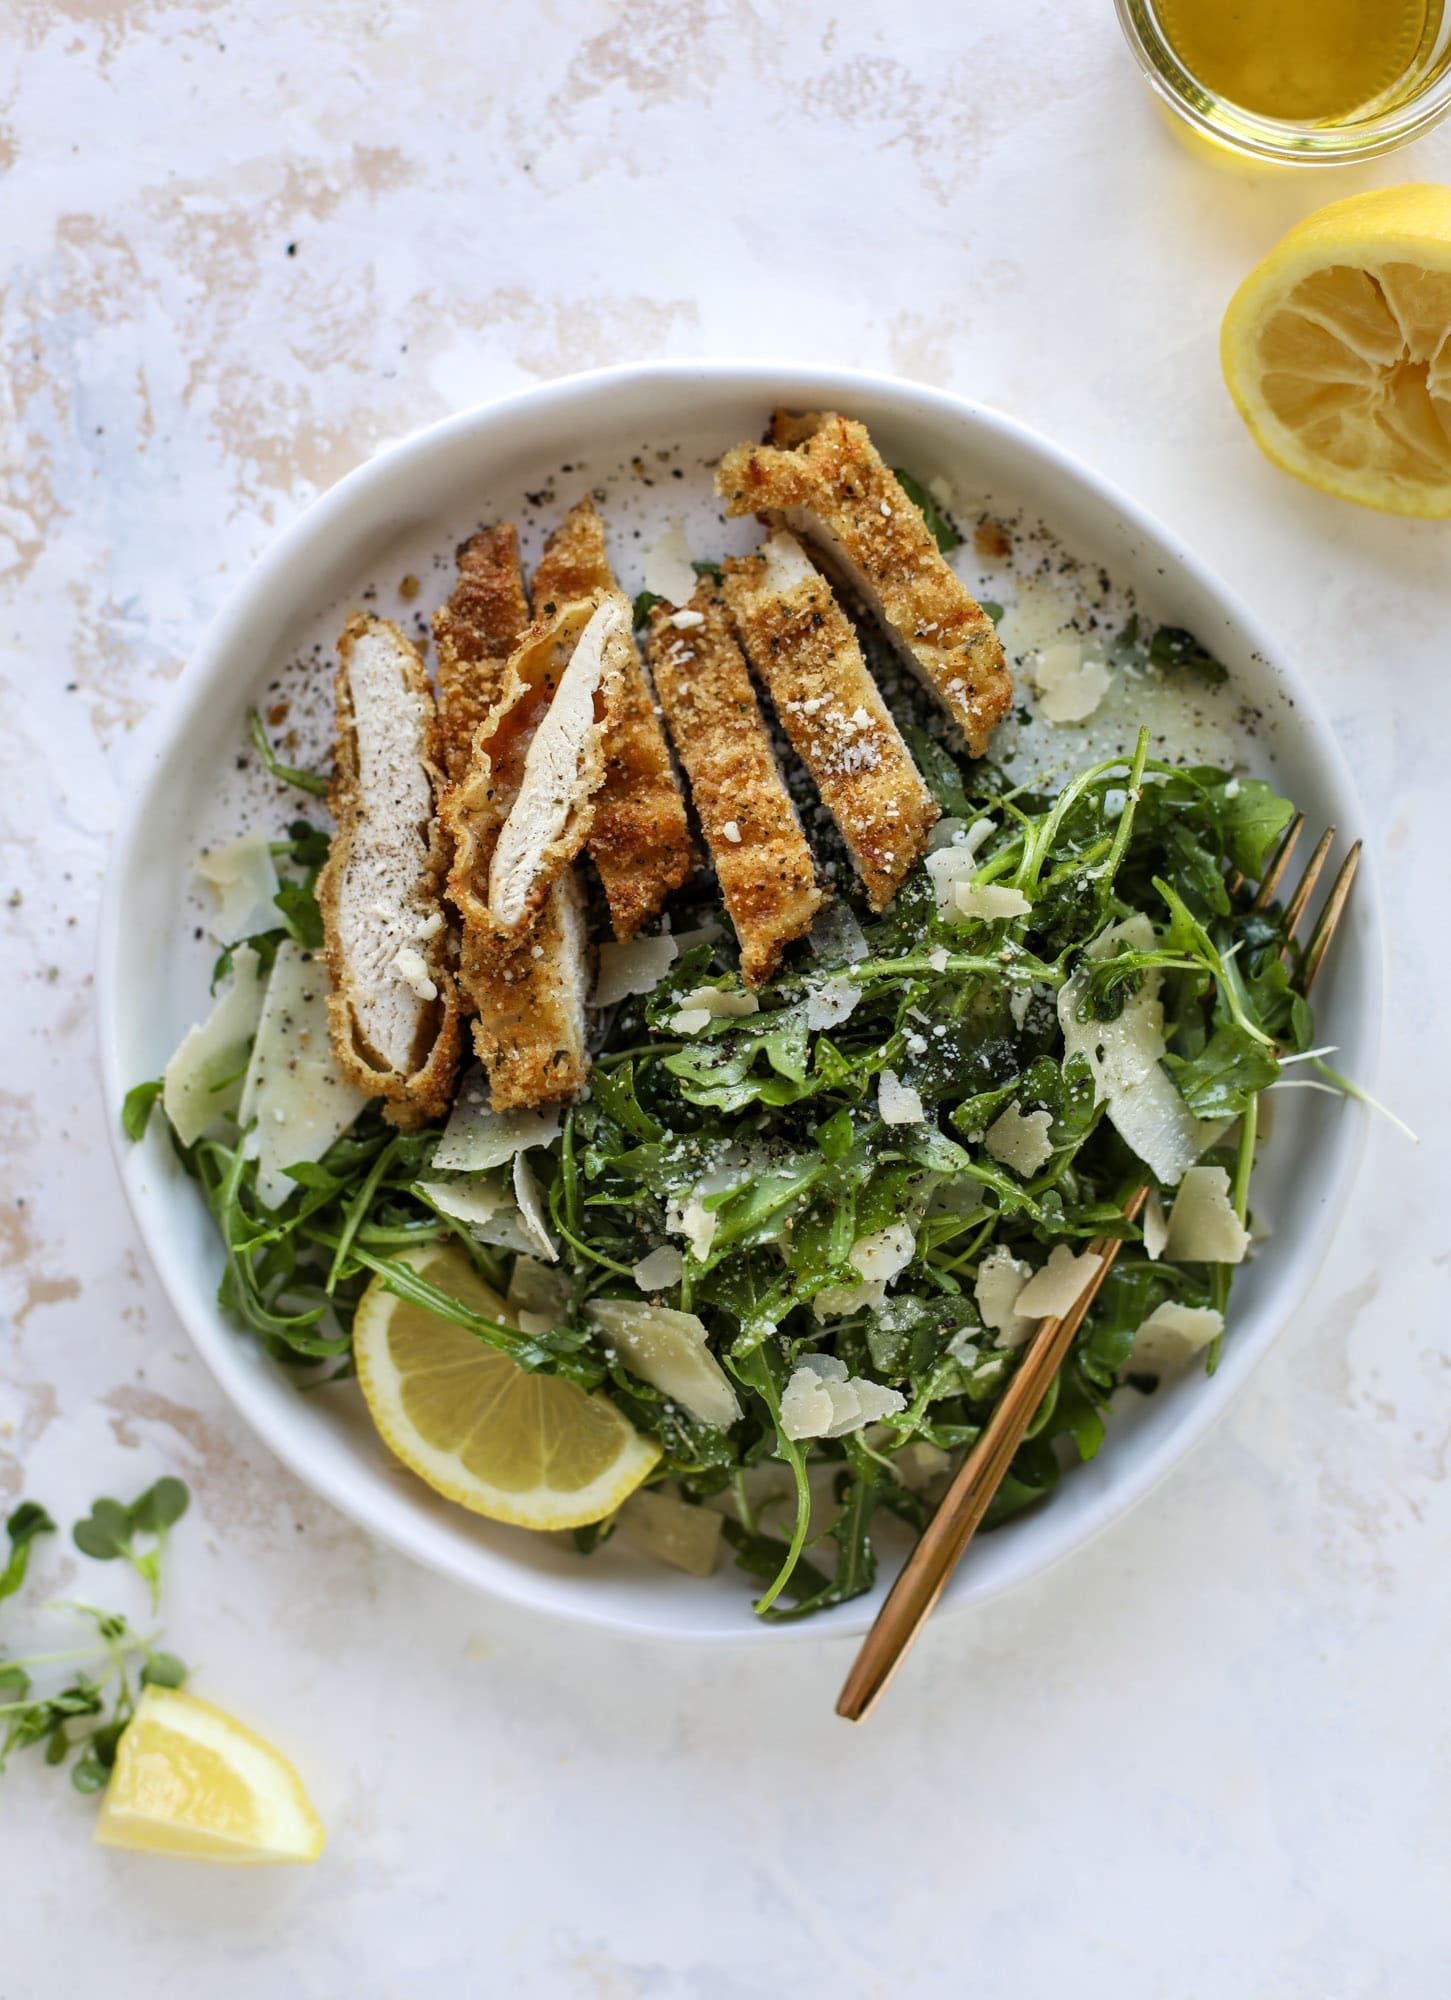 Crispy Baked Parmesan Chicken with Lemon Arugula images